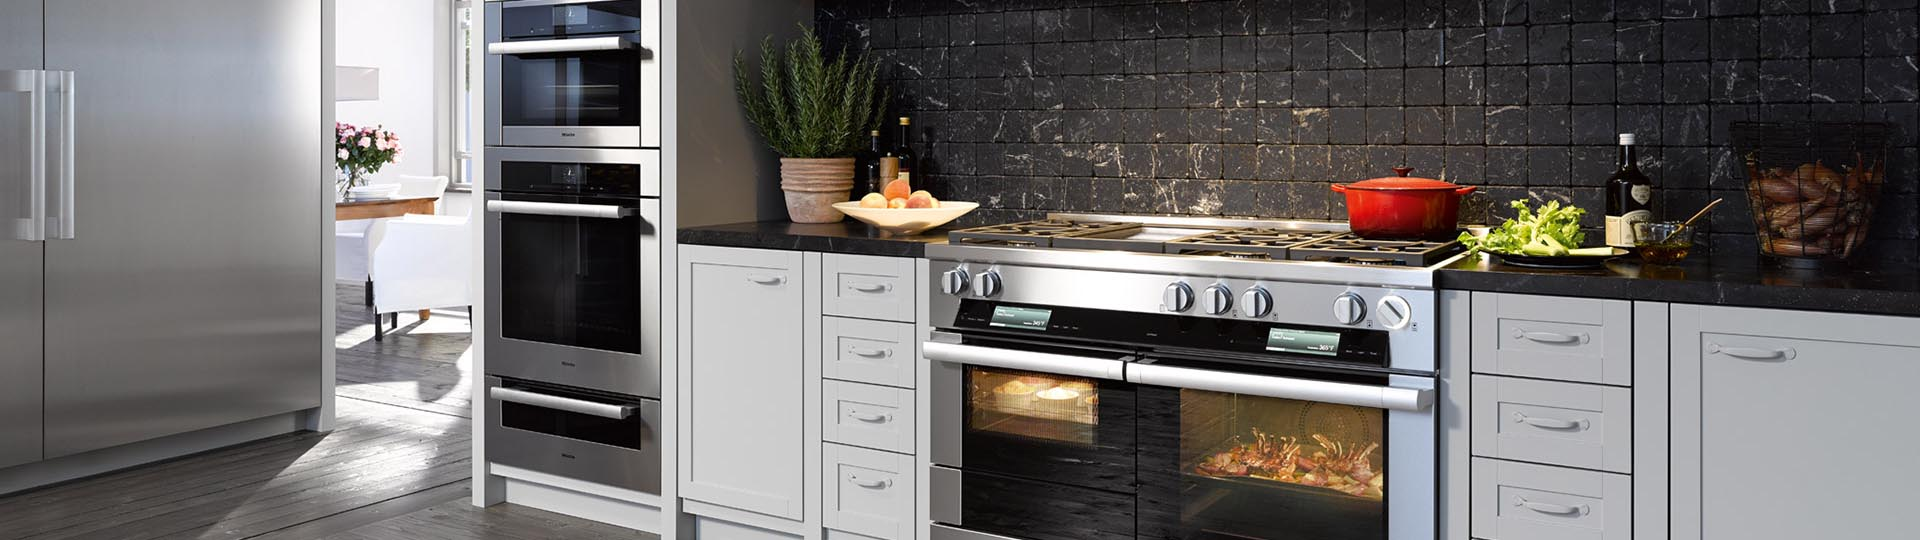 Kitchen Appliance Repair Suffolk County NY   JS Appliance